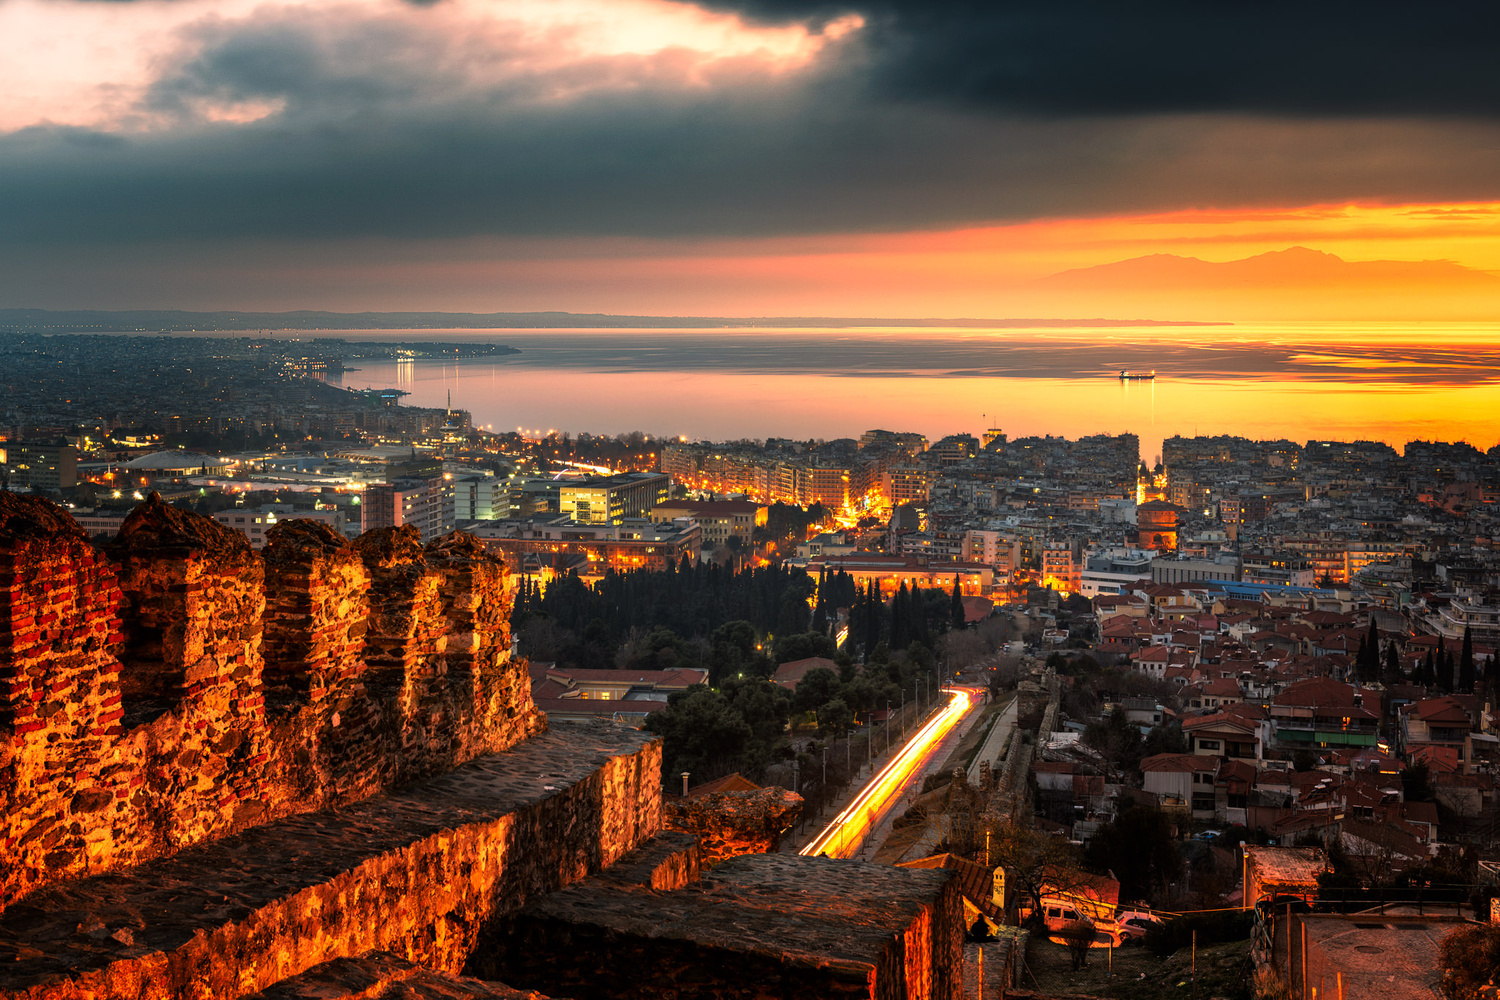 Sunset from the Eptapyrgio Castle | Thessaloniki by Nico Trinkhaus